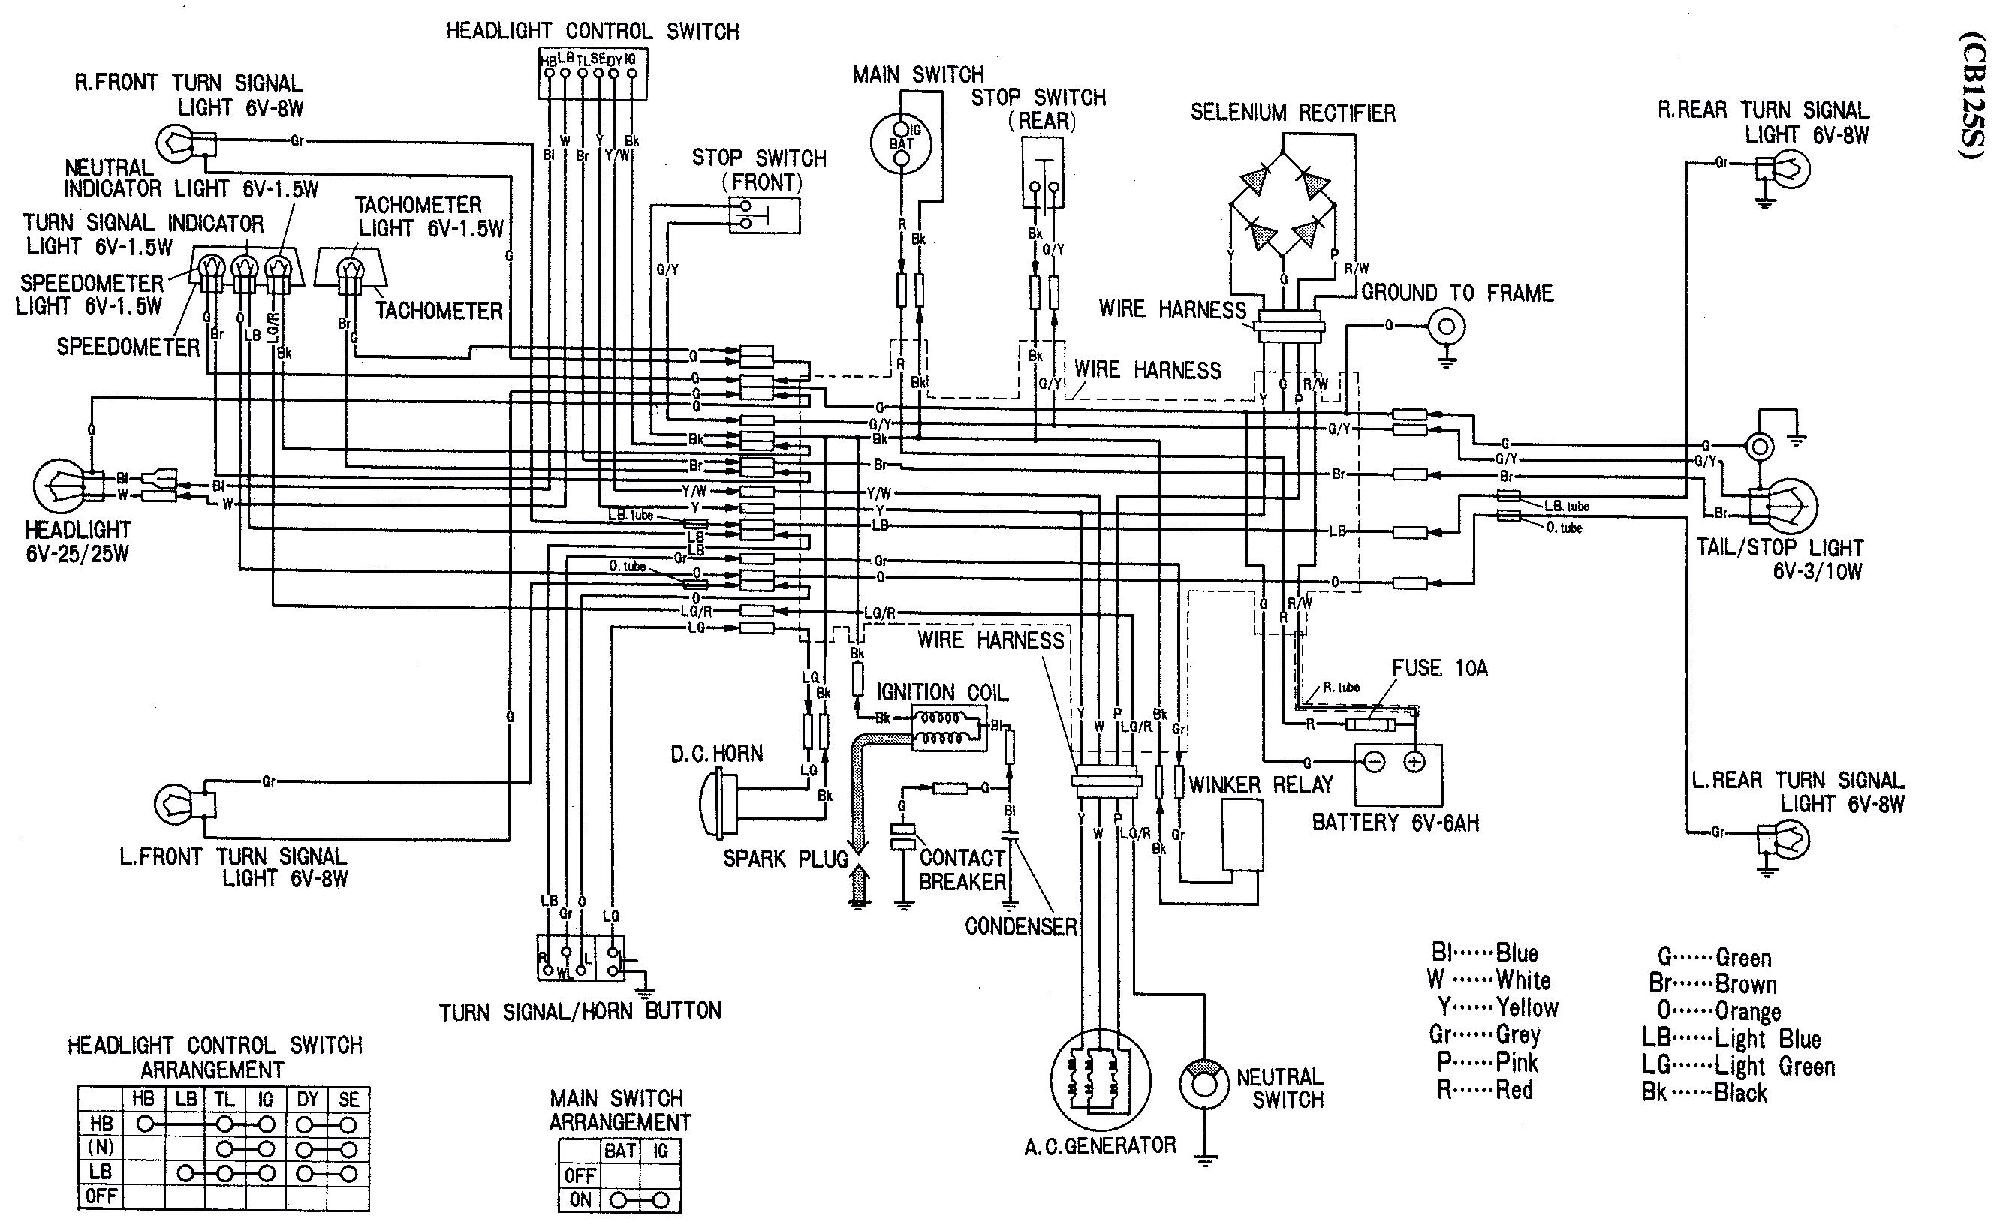 cb125 wiring with no key or kill switch honda motorcycle wiring diagrams  cb125 wiring with no